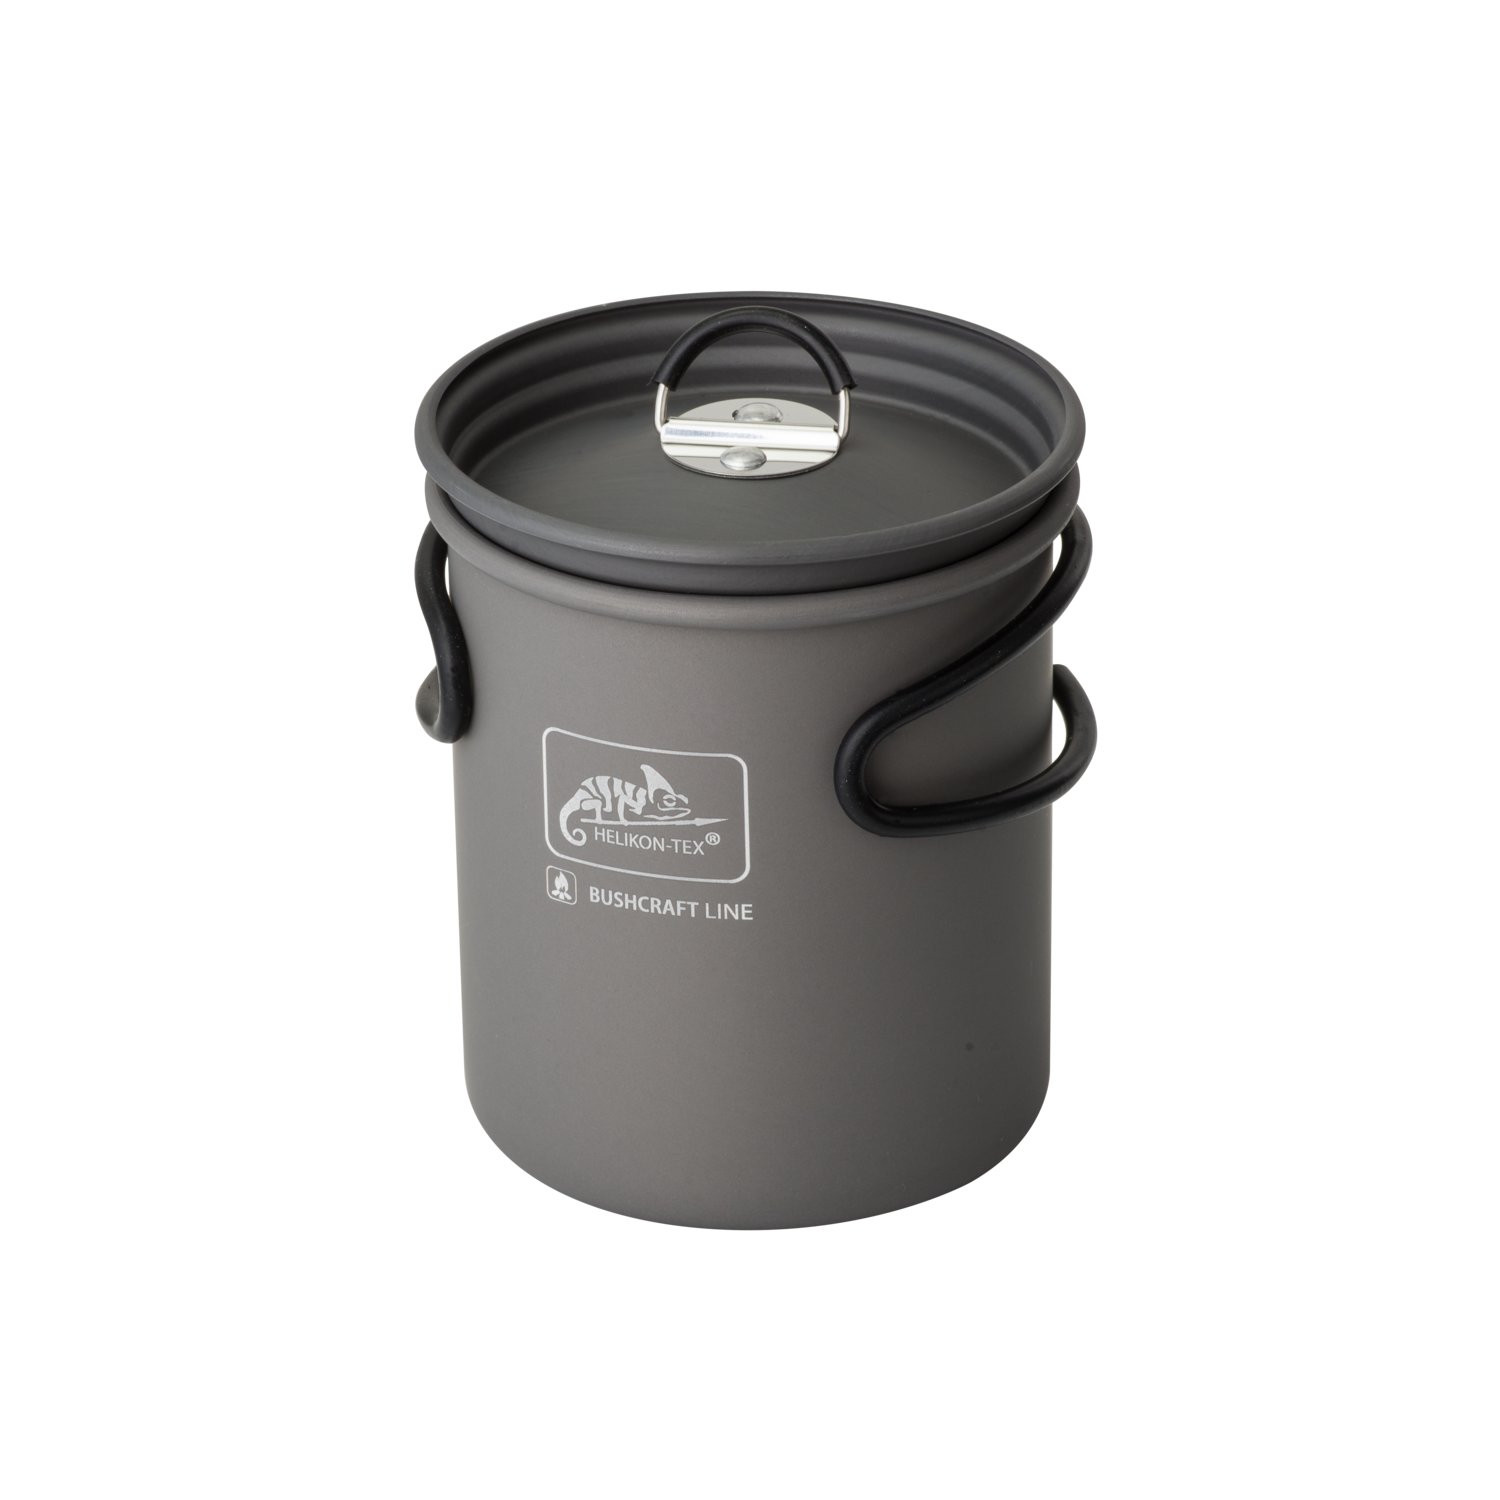 Stainless Steel Helikon-Tex Thermo Cup Becher Outdoor Survival Camping